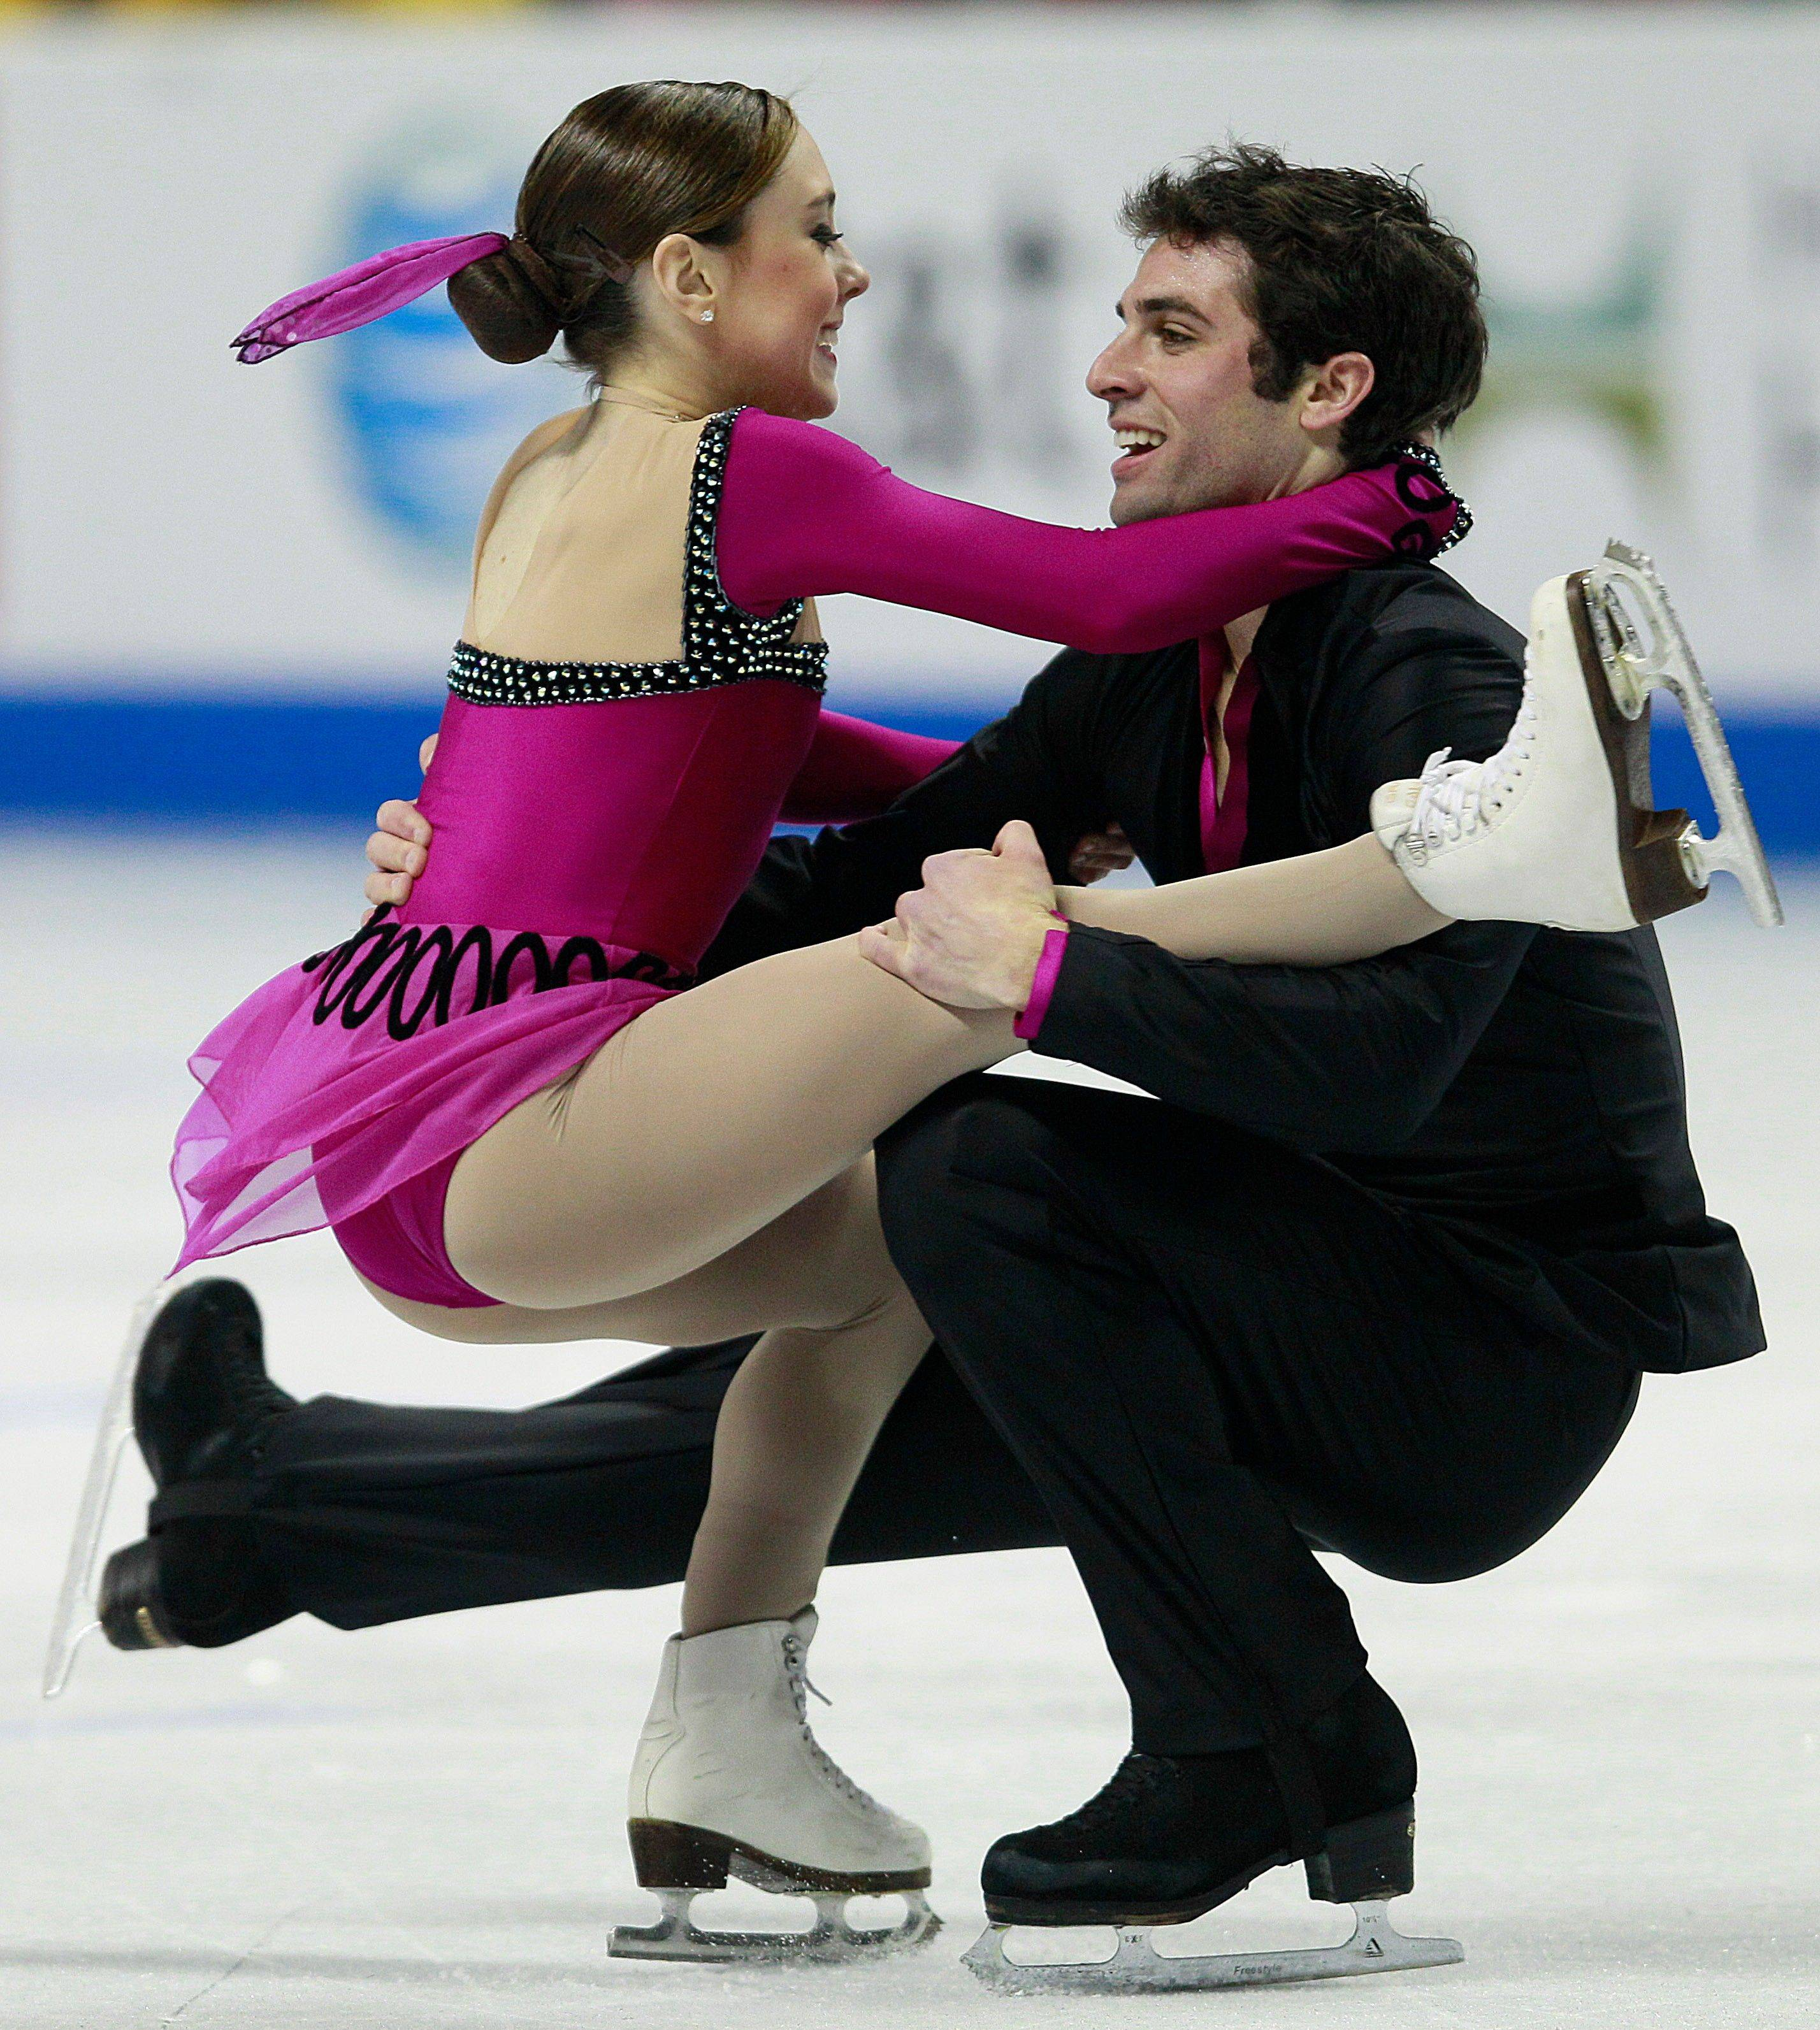 Mary Beth Marley and Rockne Brubaker finished second in the pairs free skate event at the U.S. Figure Skating Championships in San Jose, Calif., Sunday, and qualified to represent the United States at the World Figure Skating Championship in France in March.